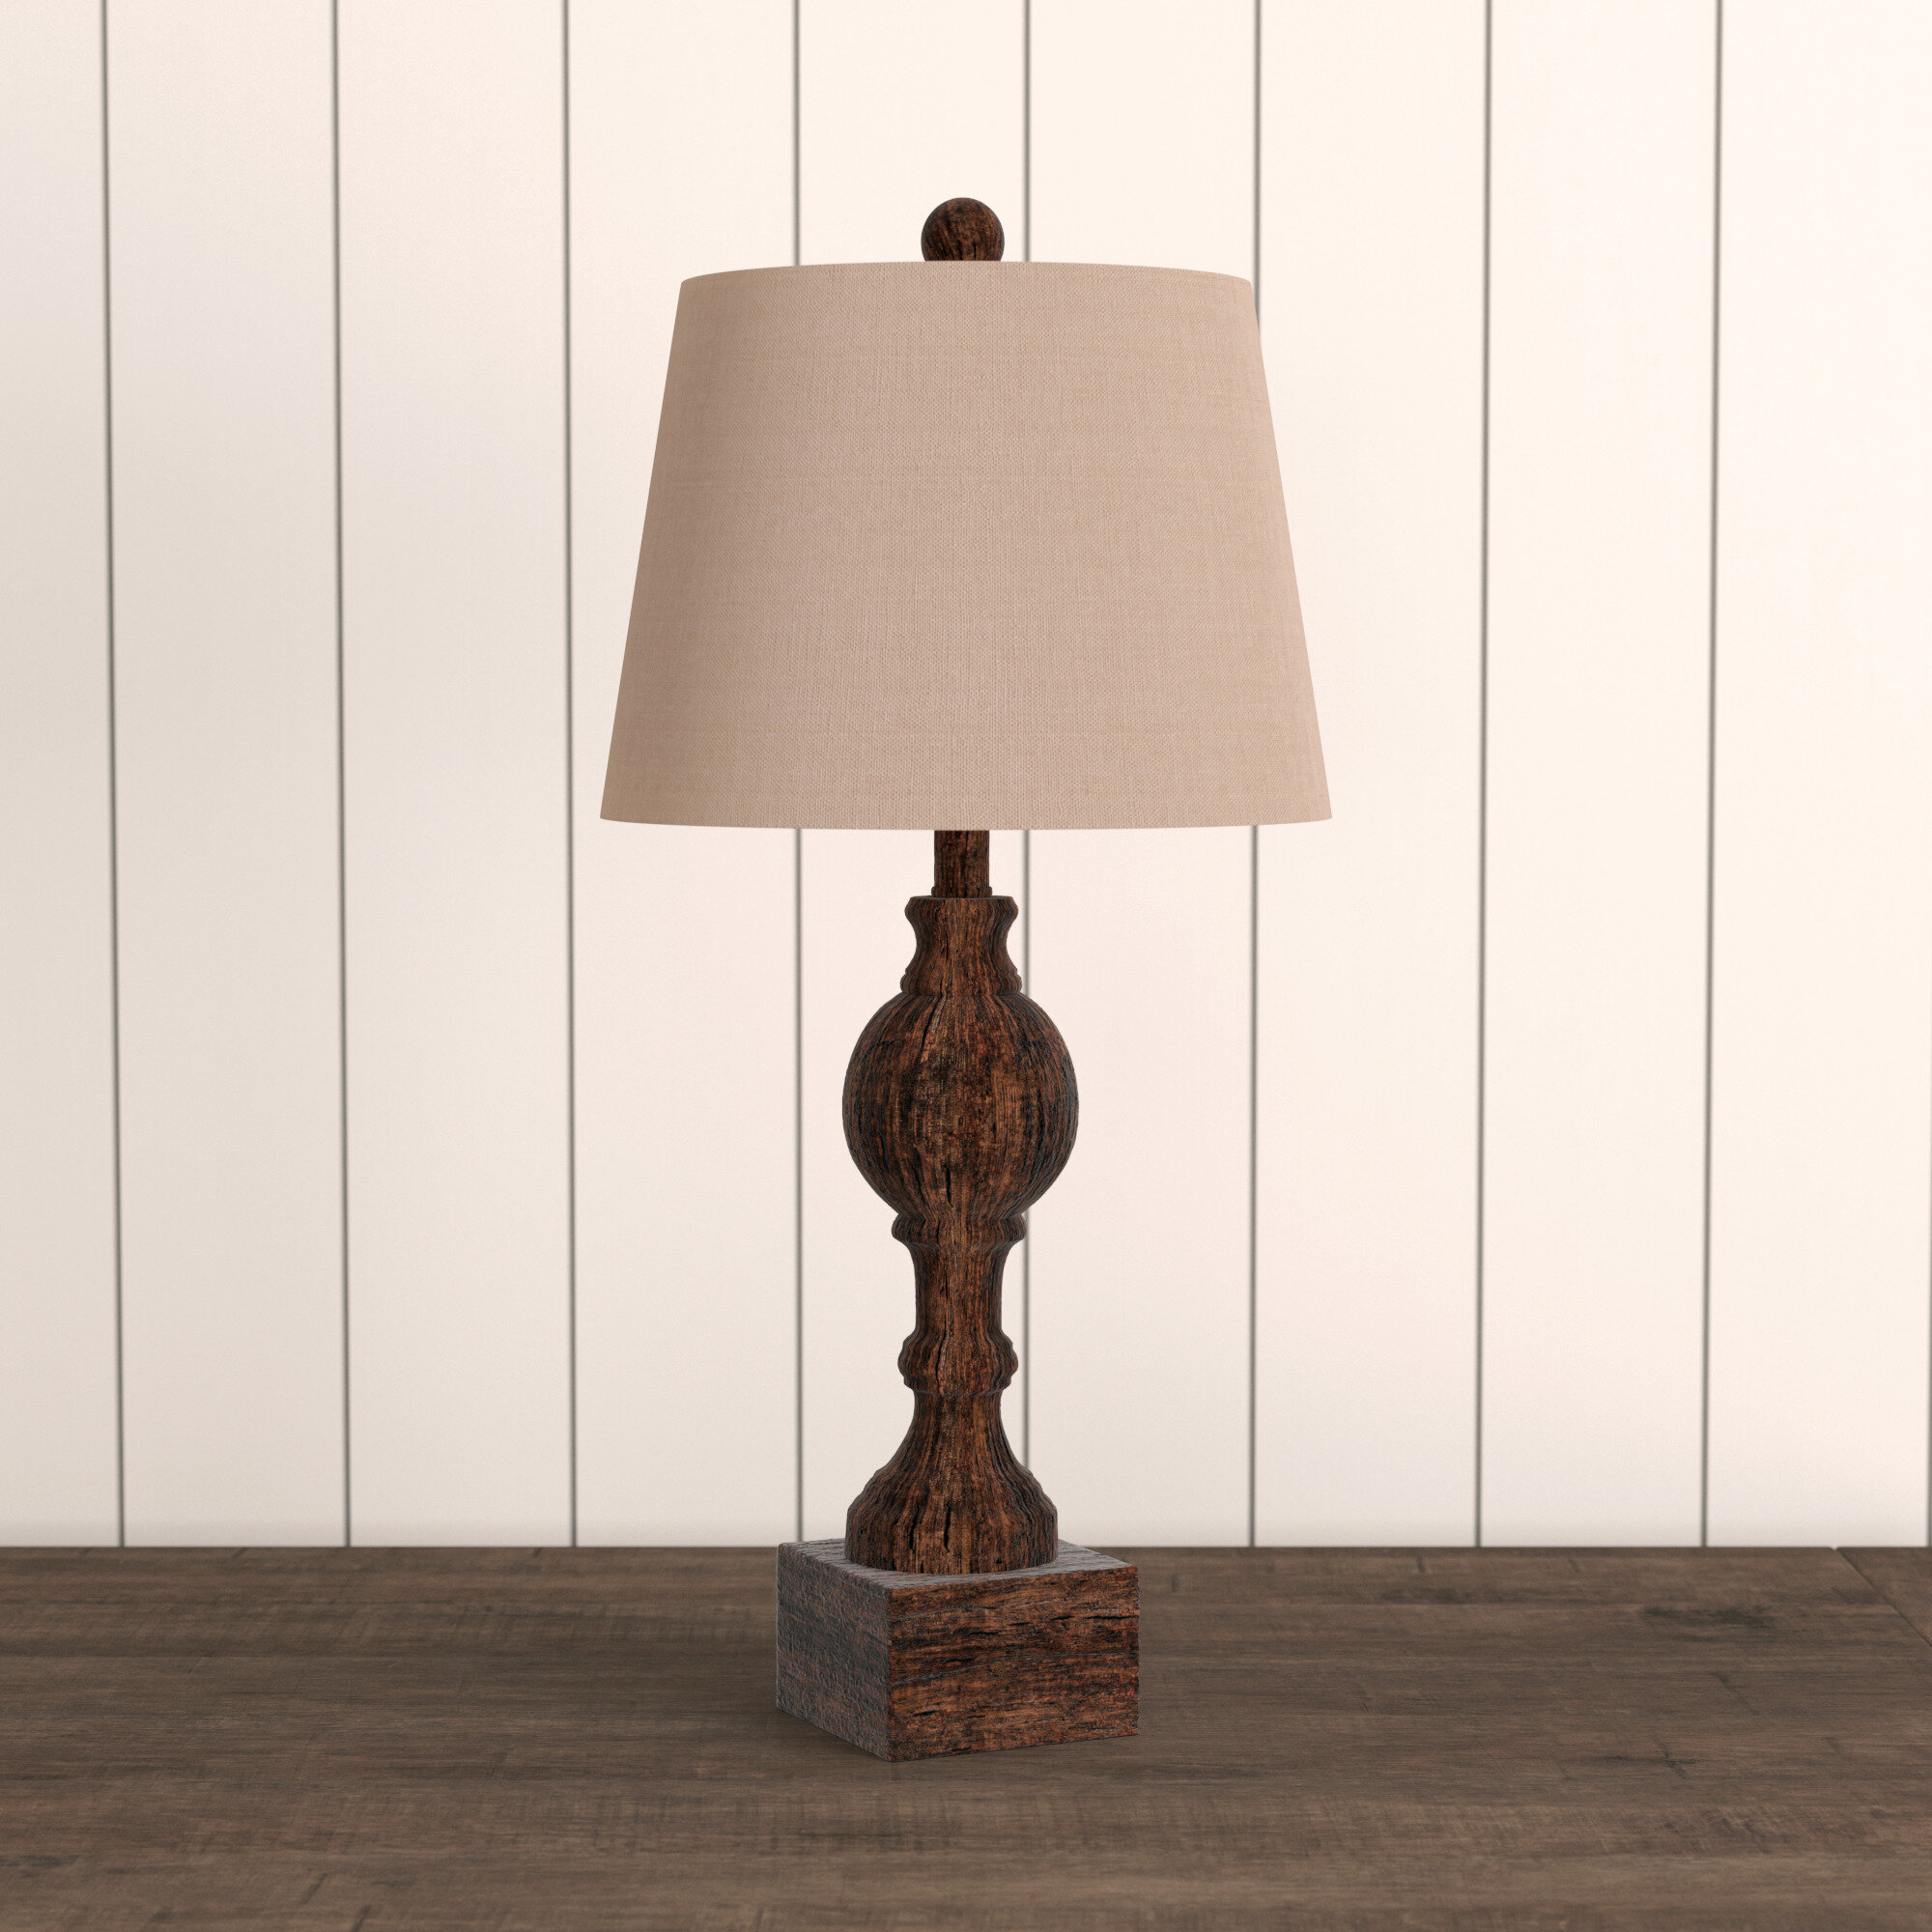 Collection of Interactive Table Lamps Rustic Info Gallery @house2homegoods.net